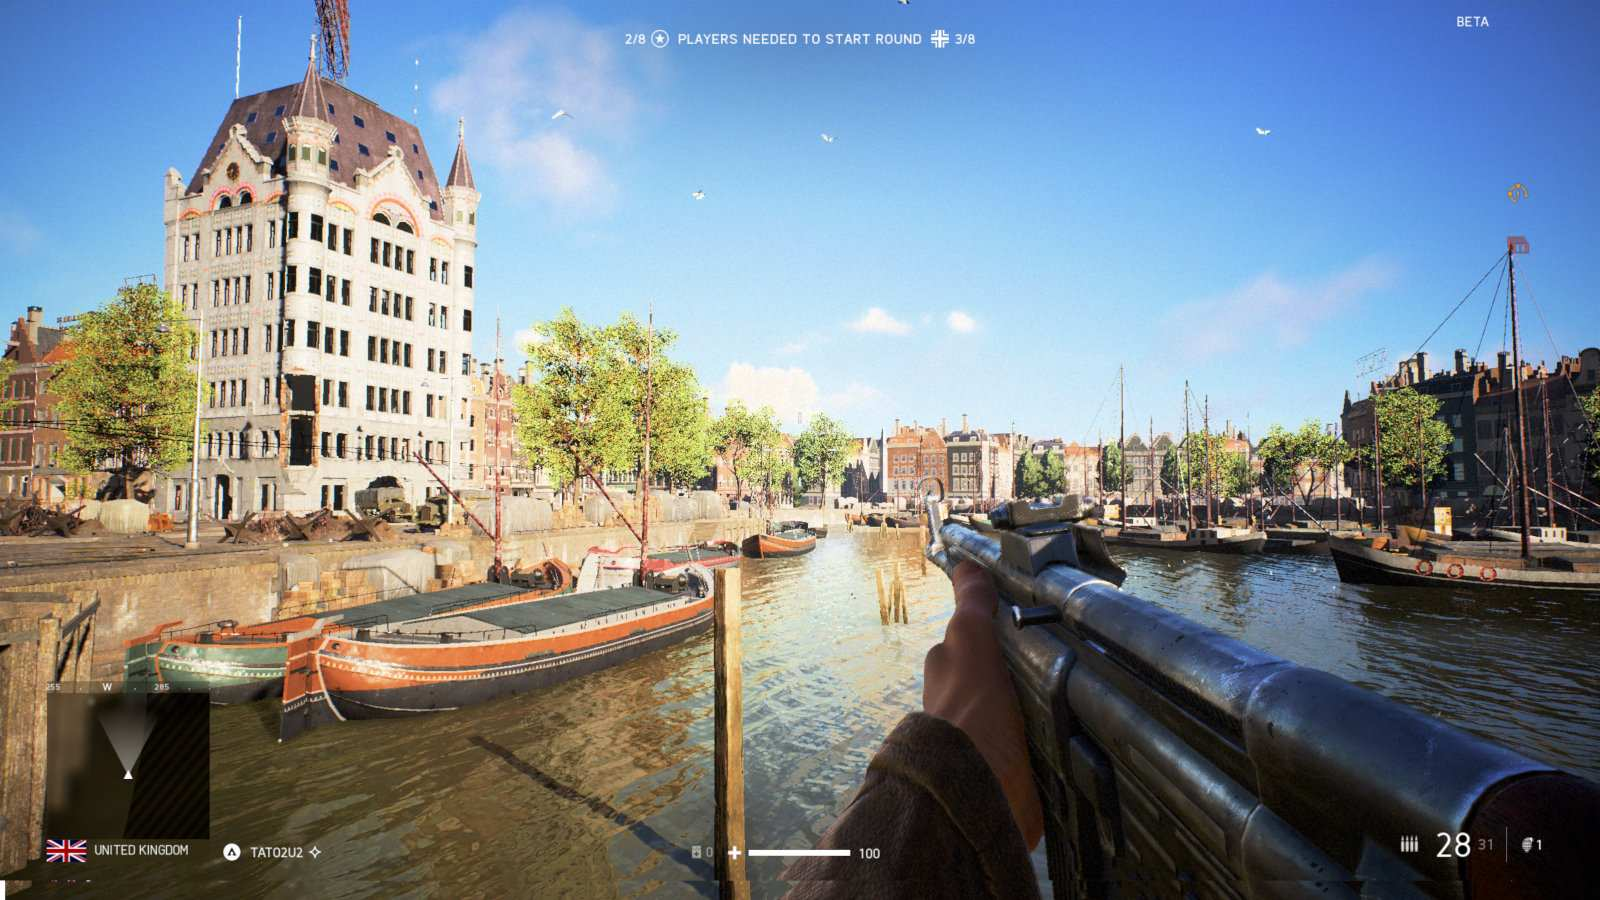 The best video games to inspire travel - explore Rotterdam in the Netherlands while playing Battlefield 5.